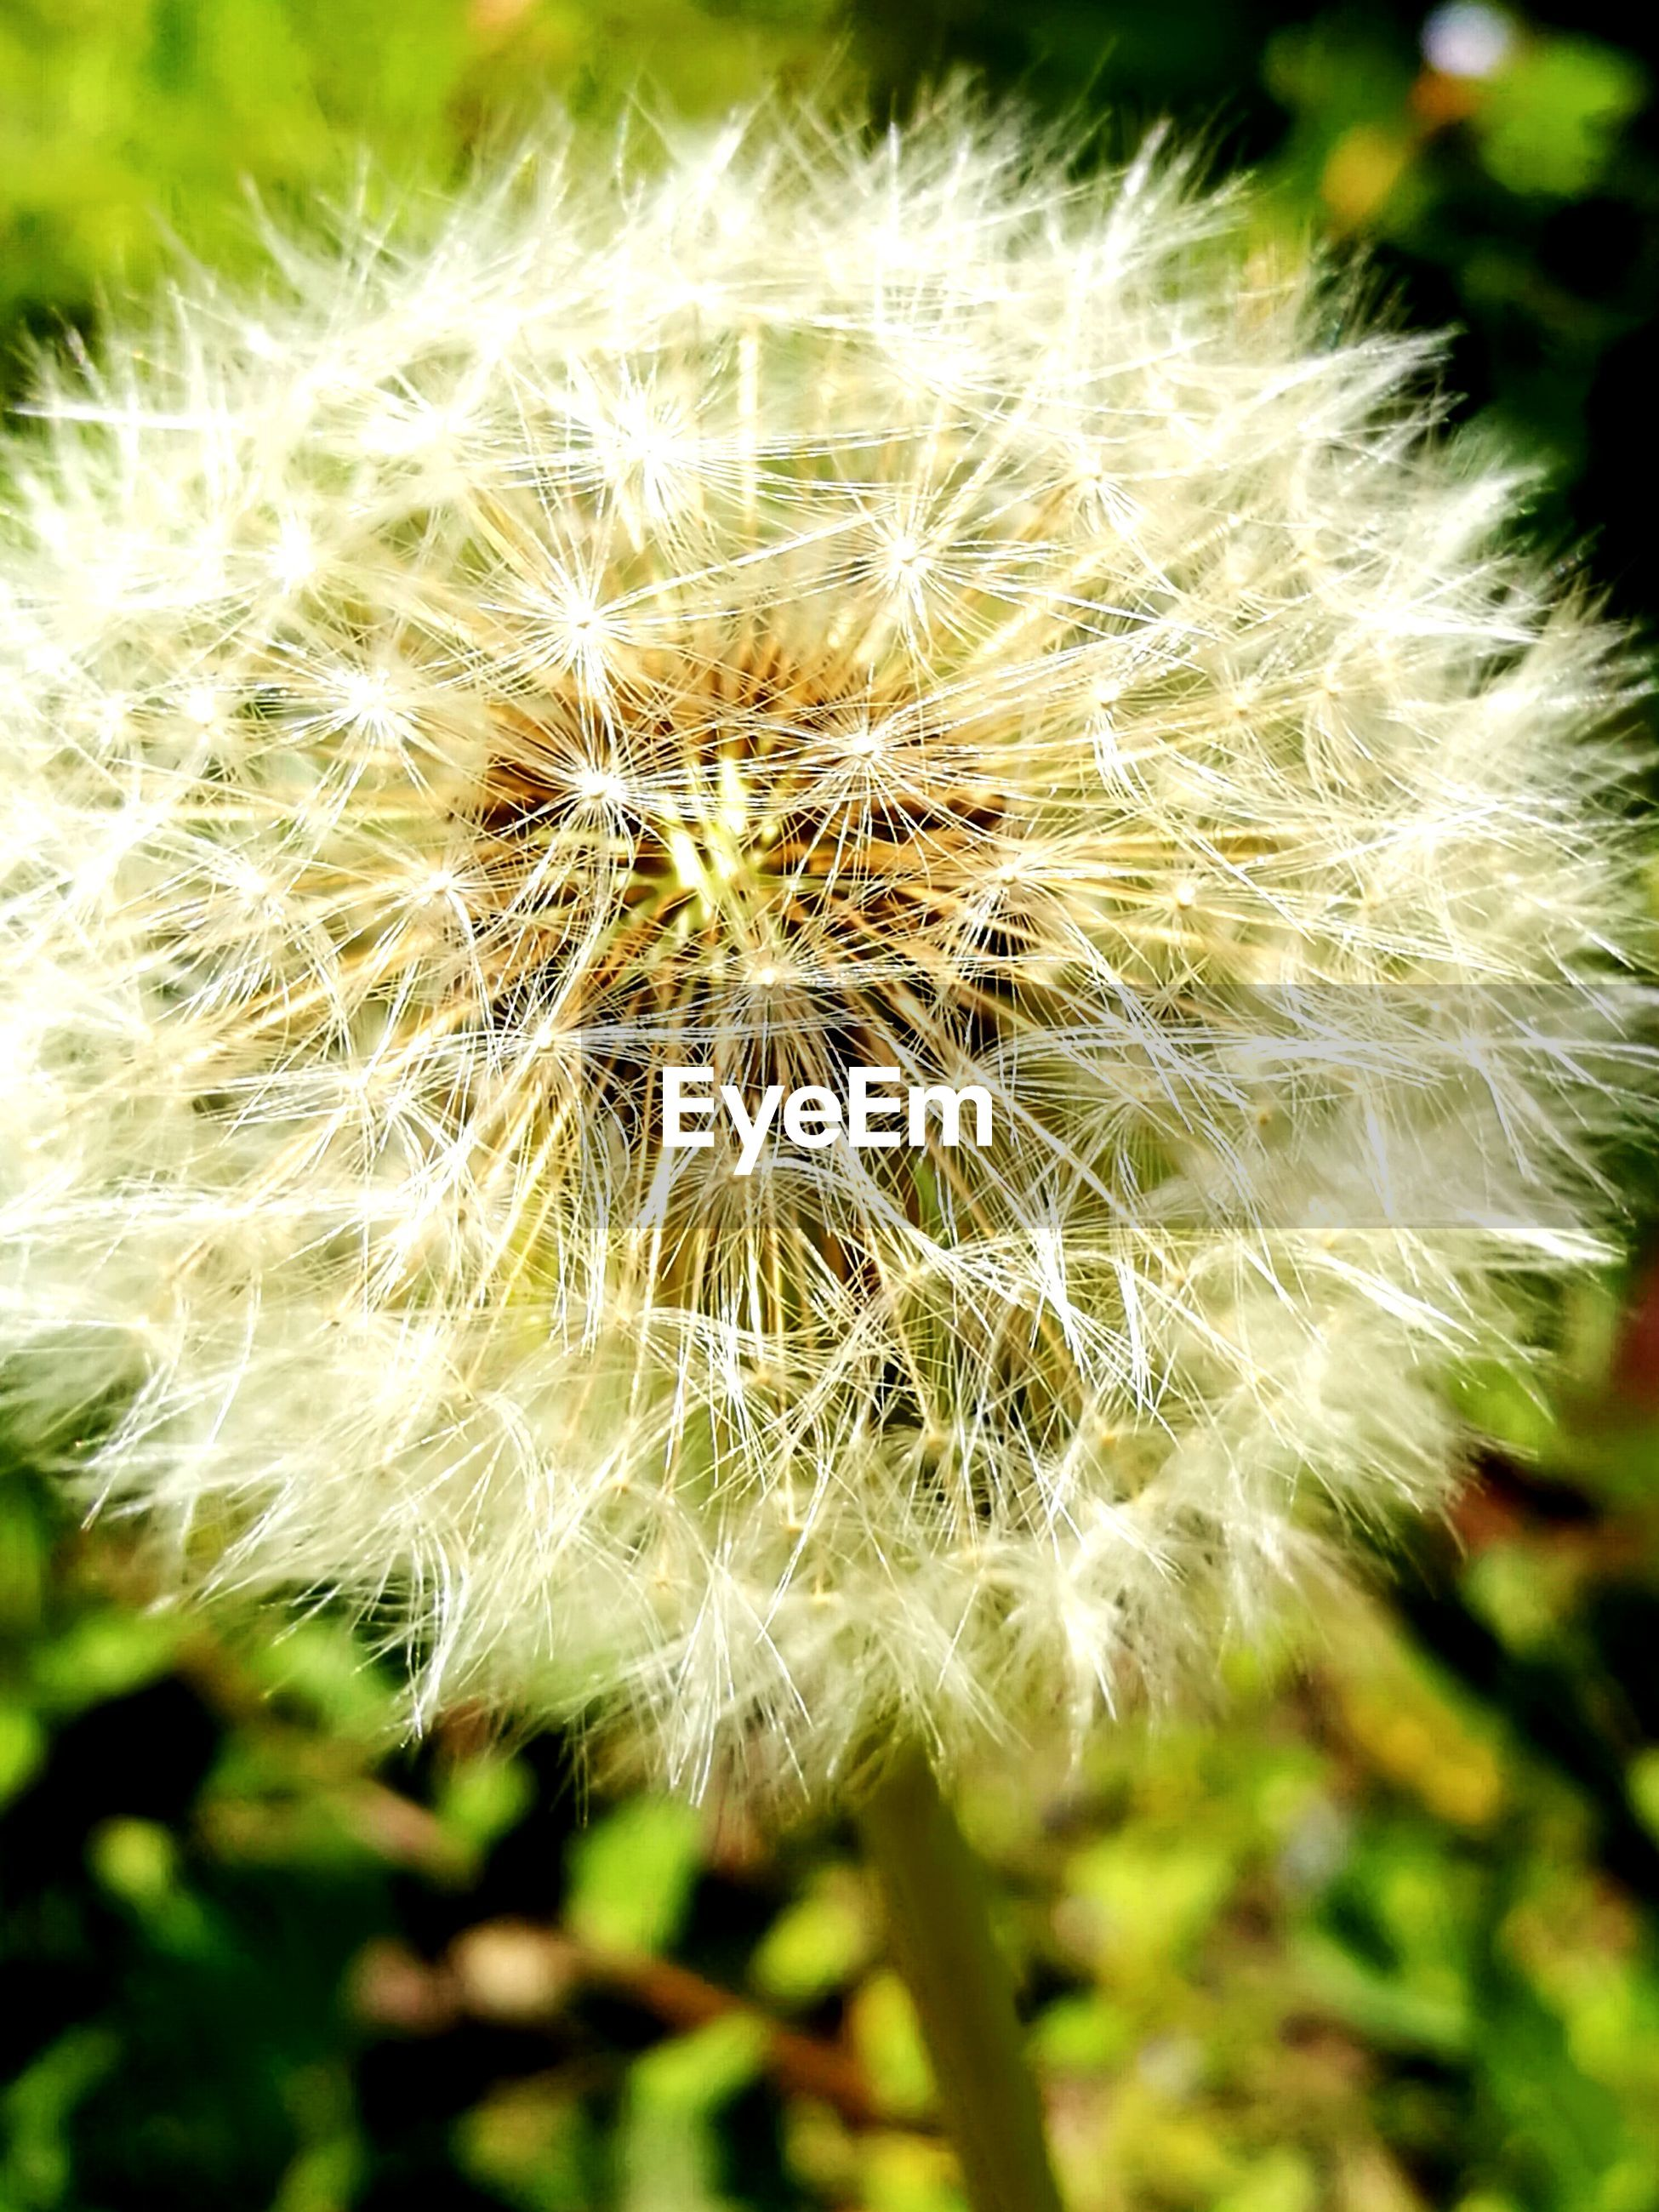 flower, fragility, dandelion, nature, growth, beauty in nature, close-up, flower head, focus on foreground, freshness, white color, softness, wildflower, plant, uncultivated, day, outdoors, no people